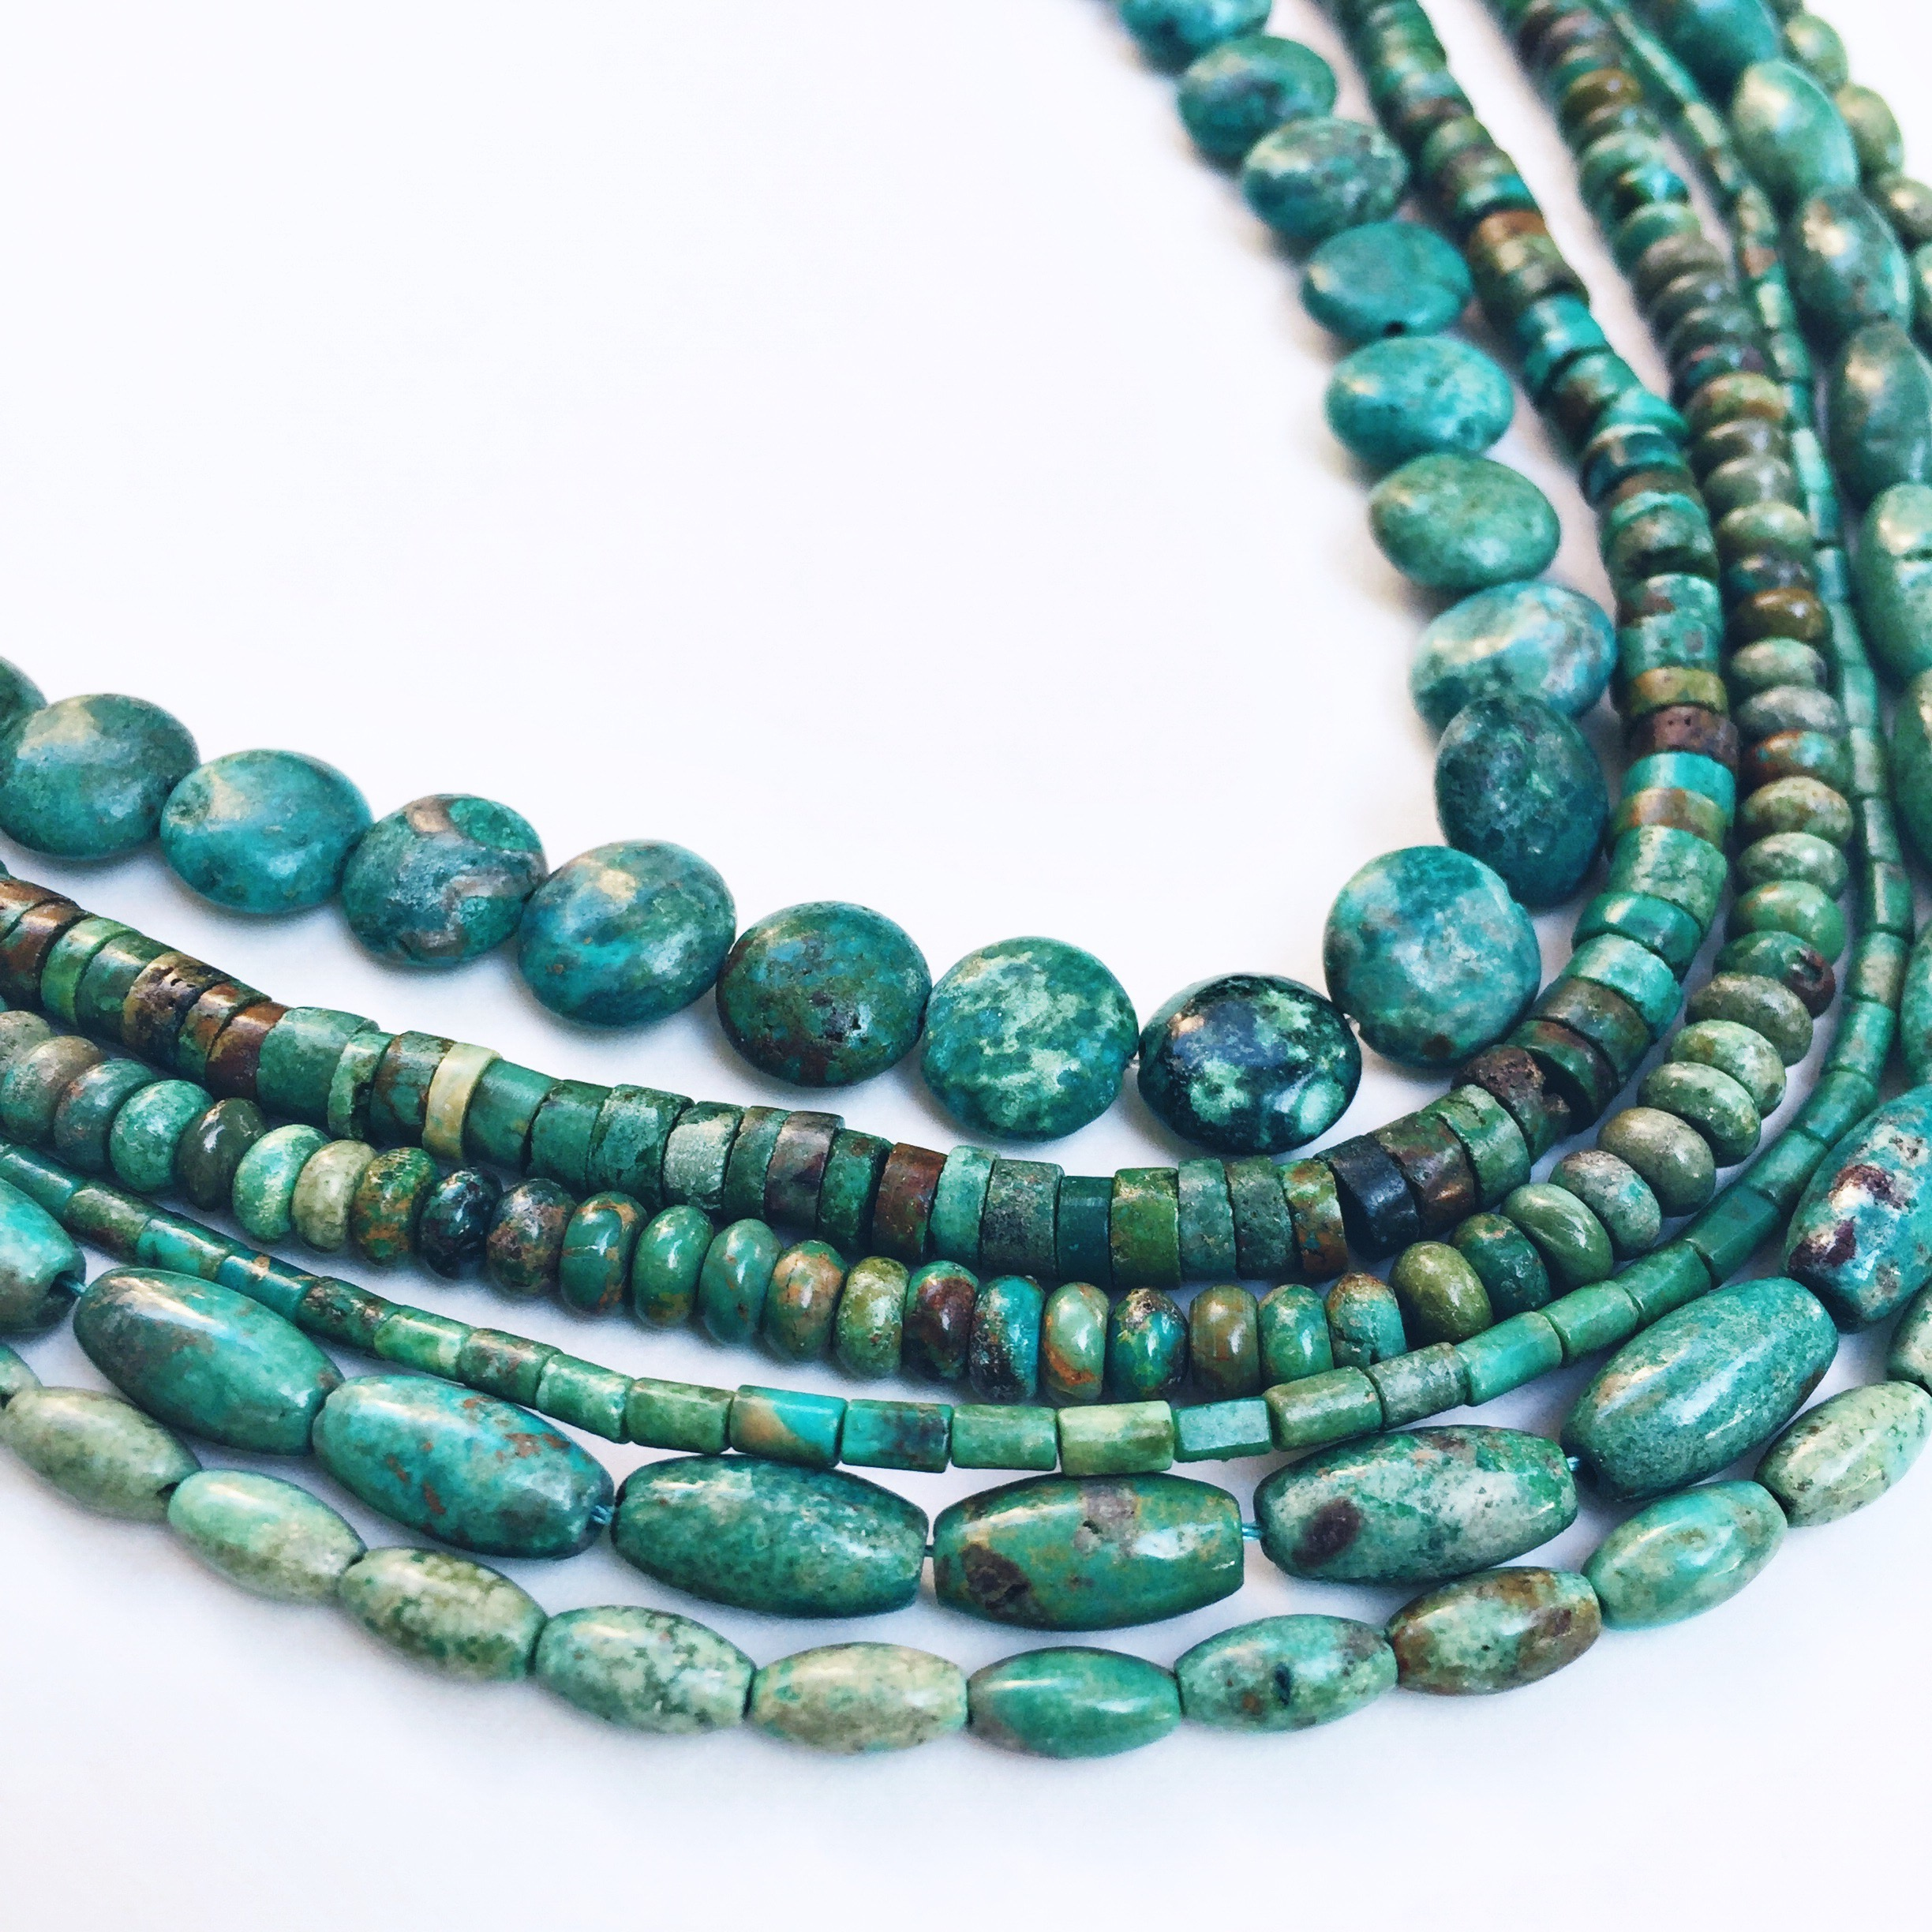 Turquoise is one of the oldest gemstones. Learn more about how turquoise can bring you luck, love, protection, and healing. Head over to theonyxfeather.com